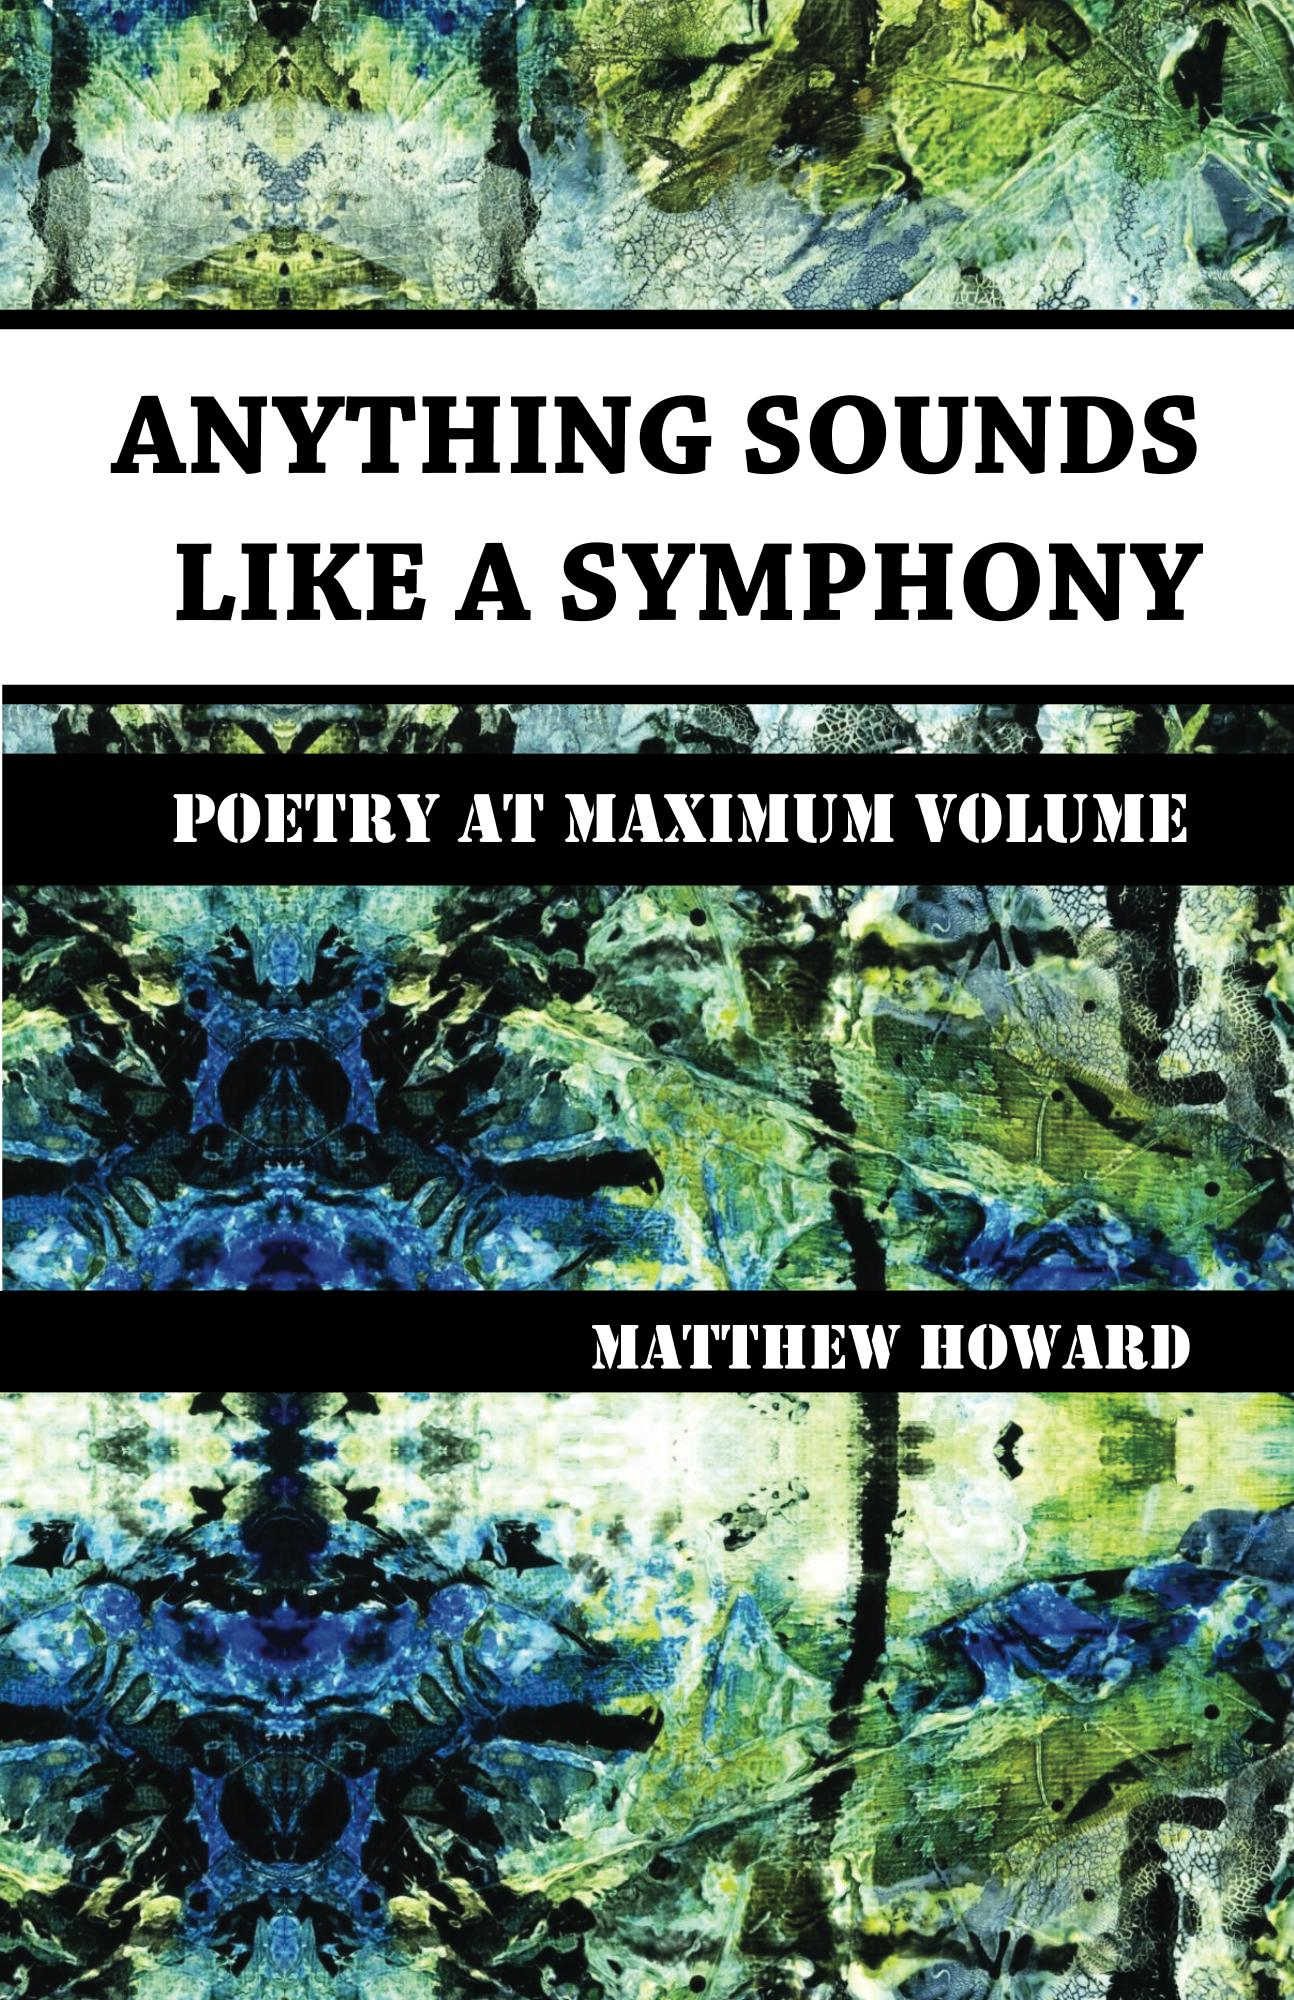 Anything Sounds Like a Symphony